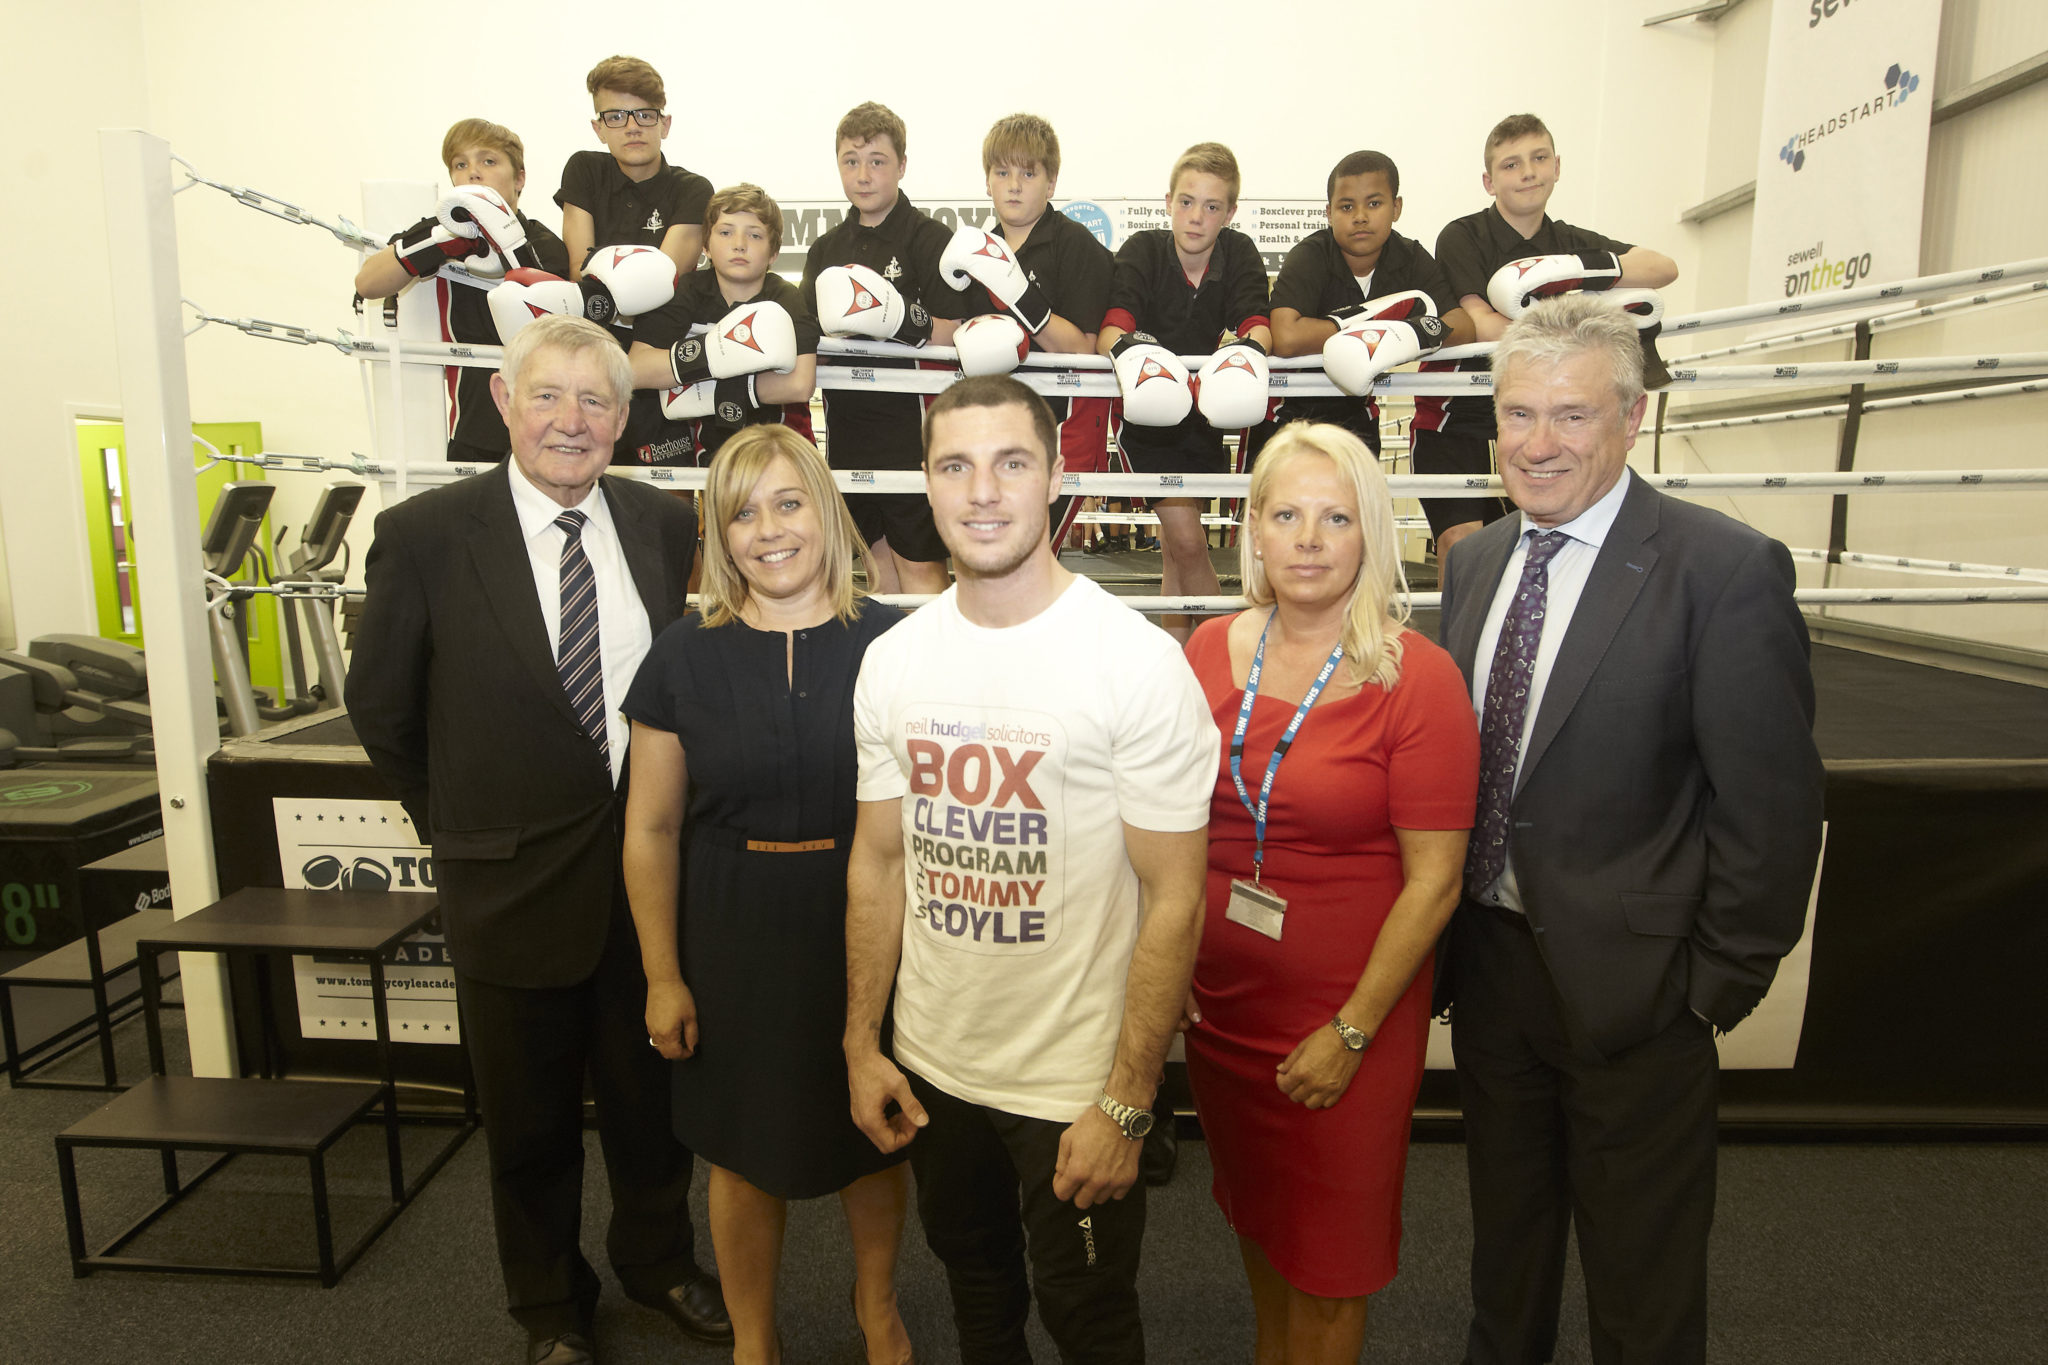 Hudgell Solicitors Trust delighted to support Tommy Coyle as he launches his second Hull boxing academy